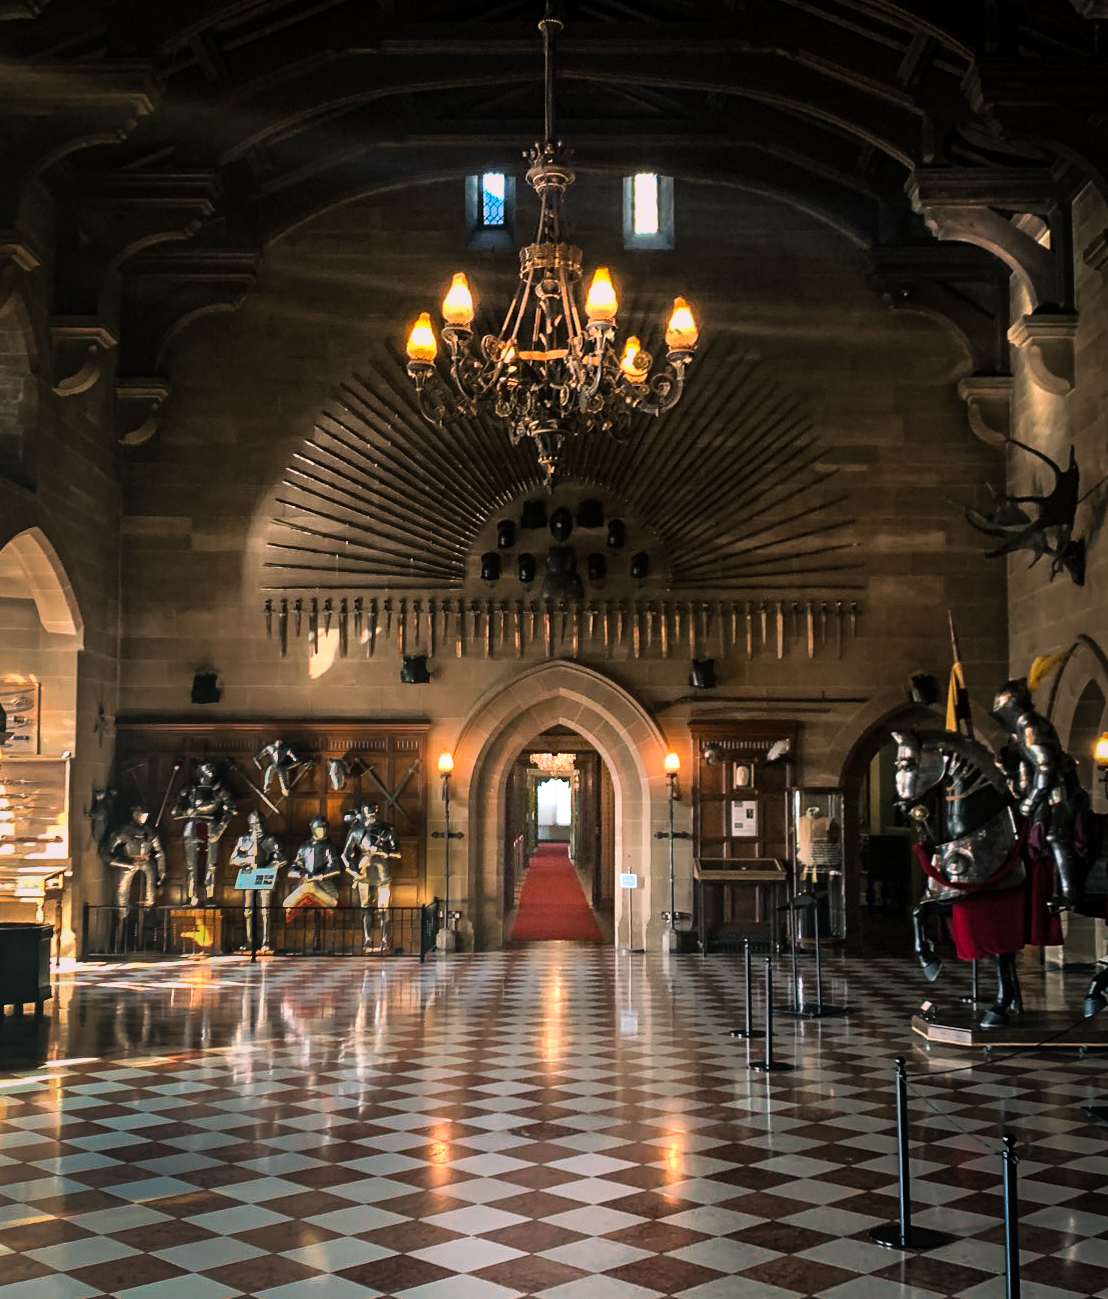 Inside the great hall. It's filled with suits of armour and decorative weaponry. There's a door leading to the state rooms from the centre of the main room.